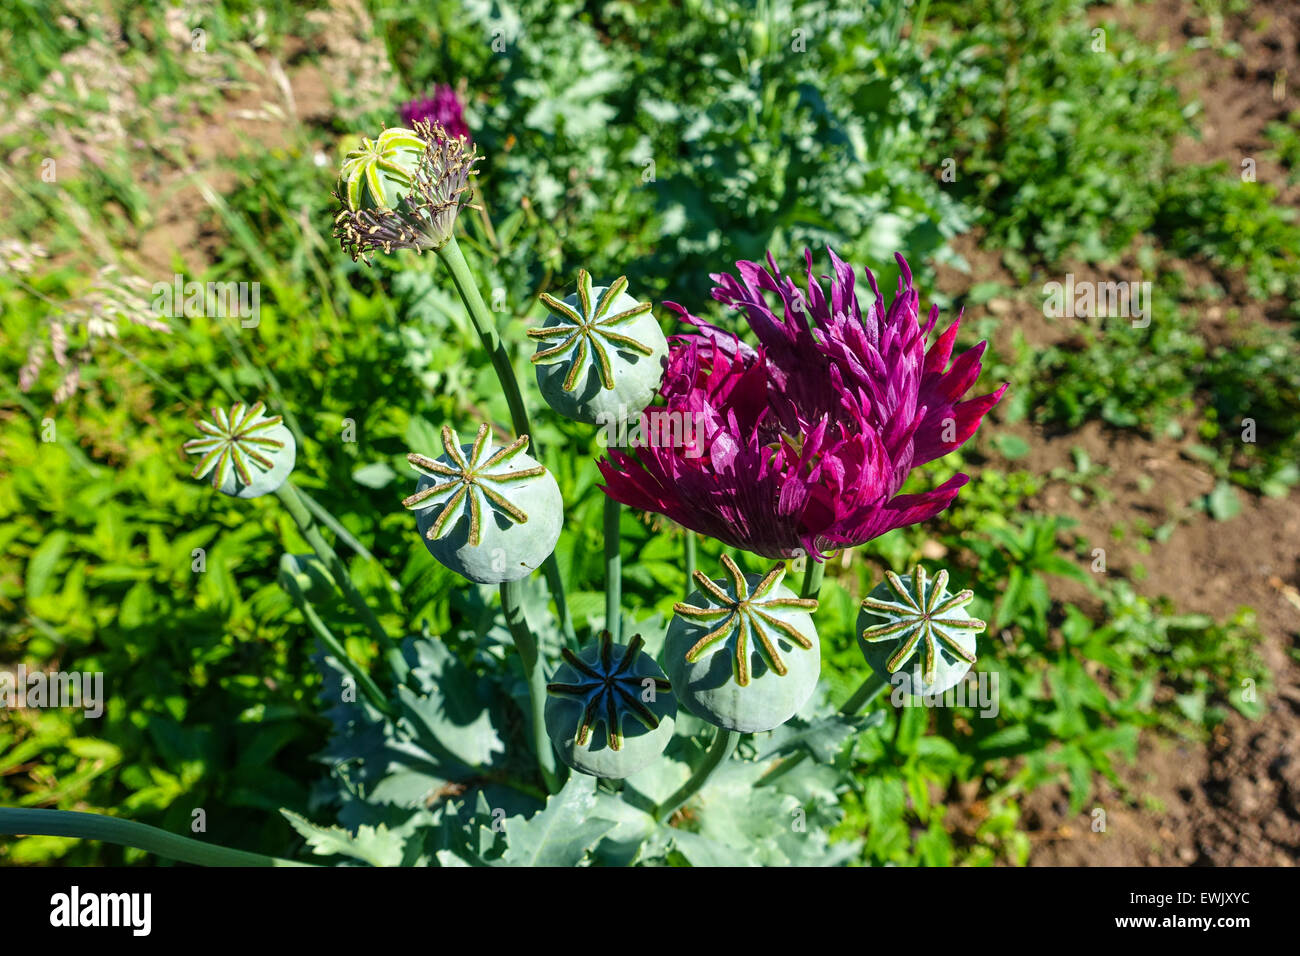 Heroin opium poppy stock photos heroin opium poppy stock images poppy flowers and poppy seed heads opium drugs war on drugs heroin mightylinksfo